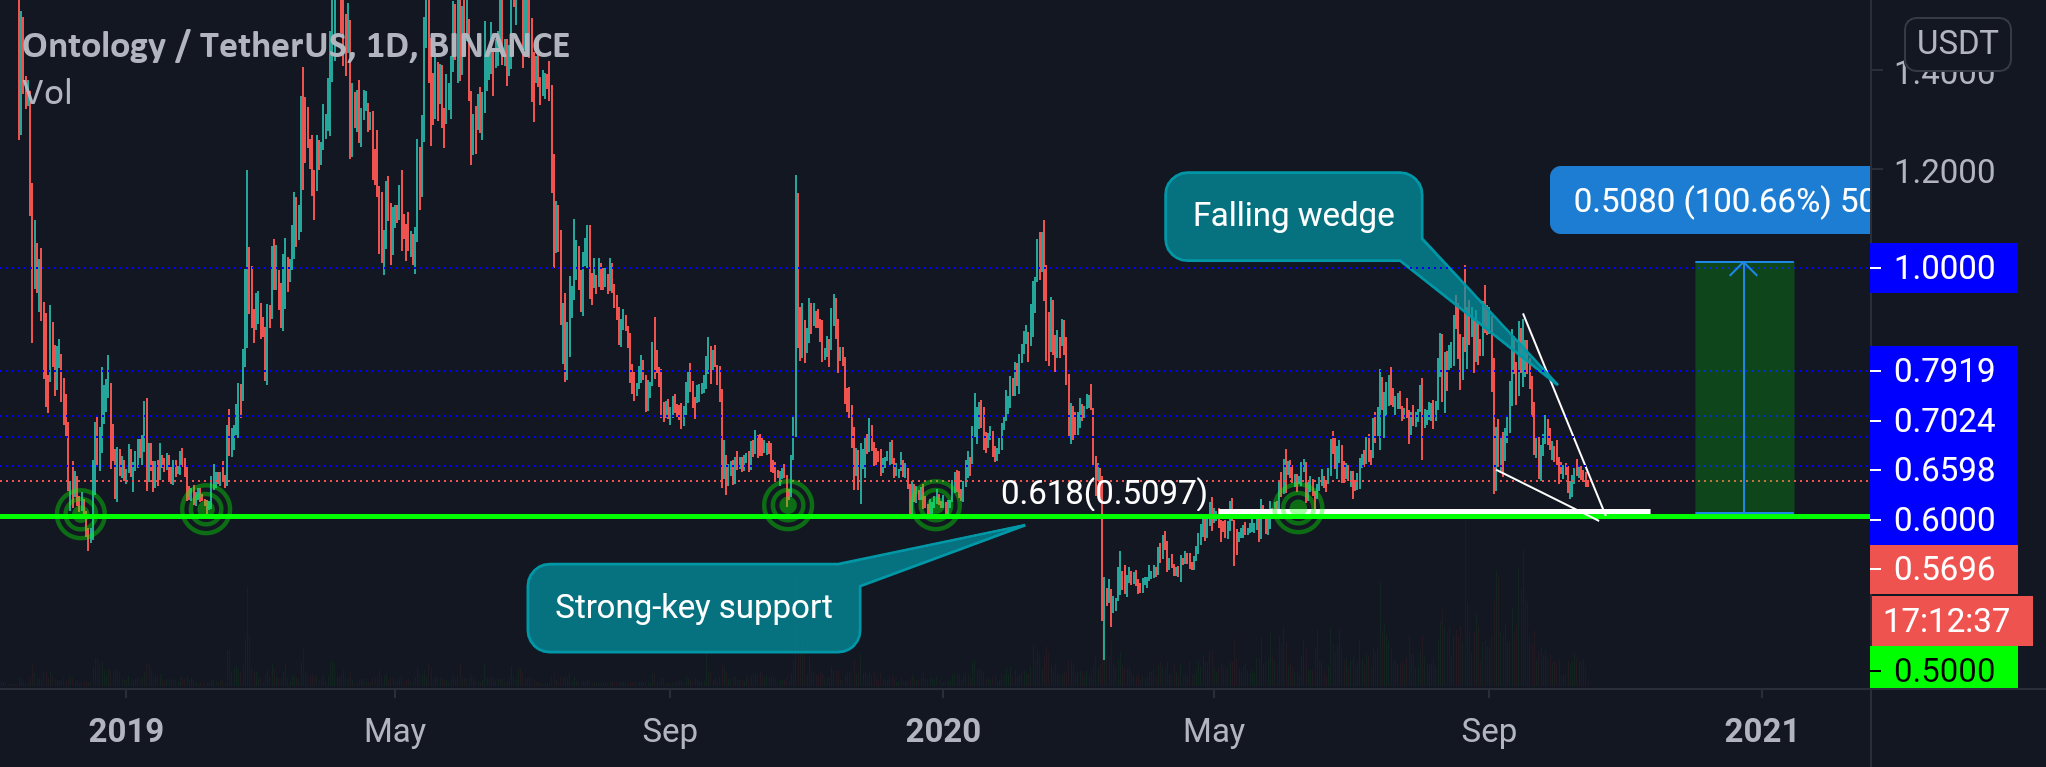 Ont/usdt buy opportunity up to 100% profit